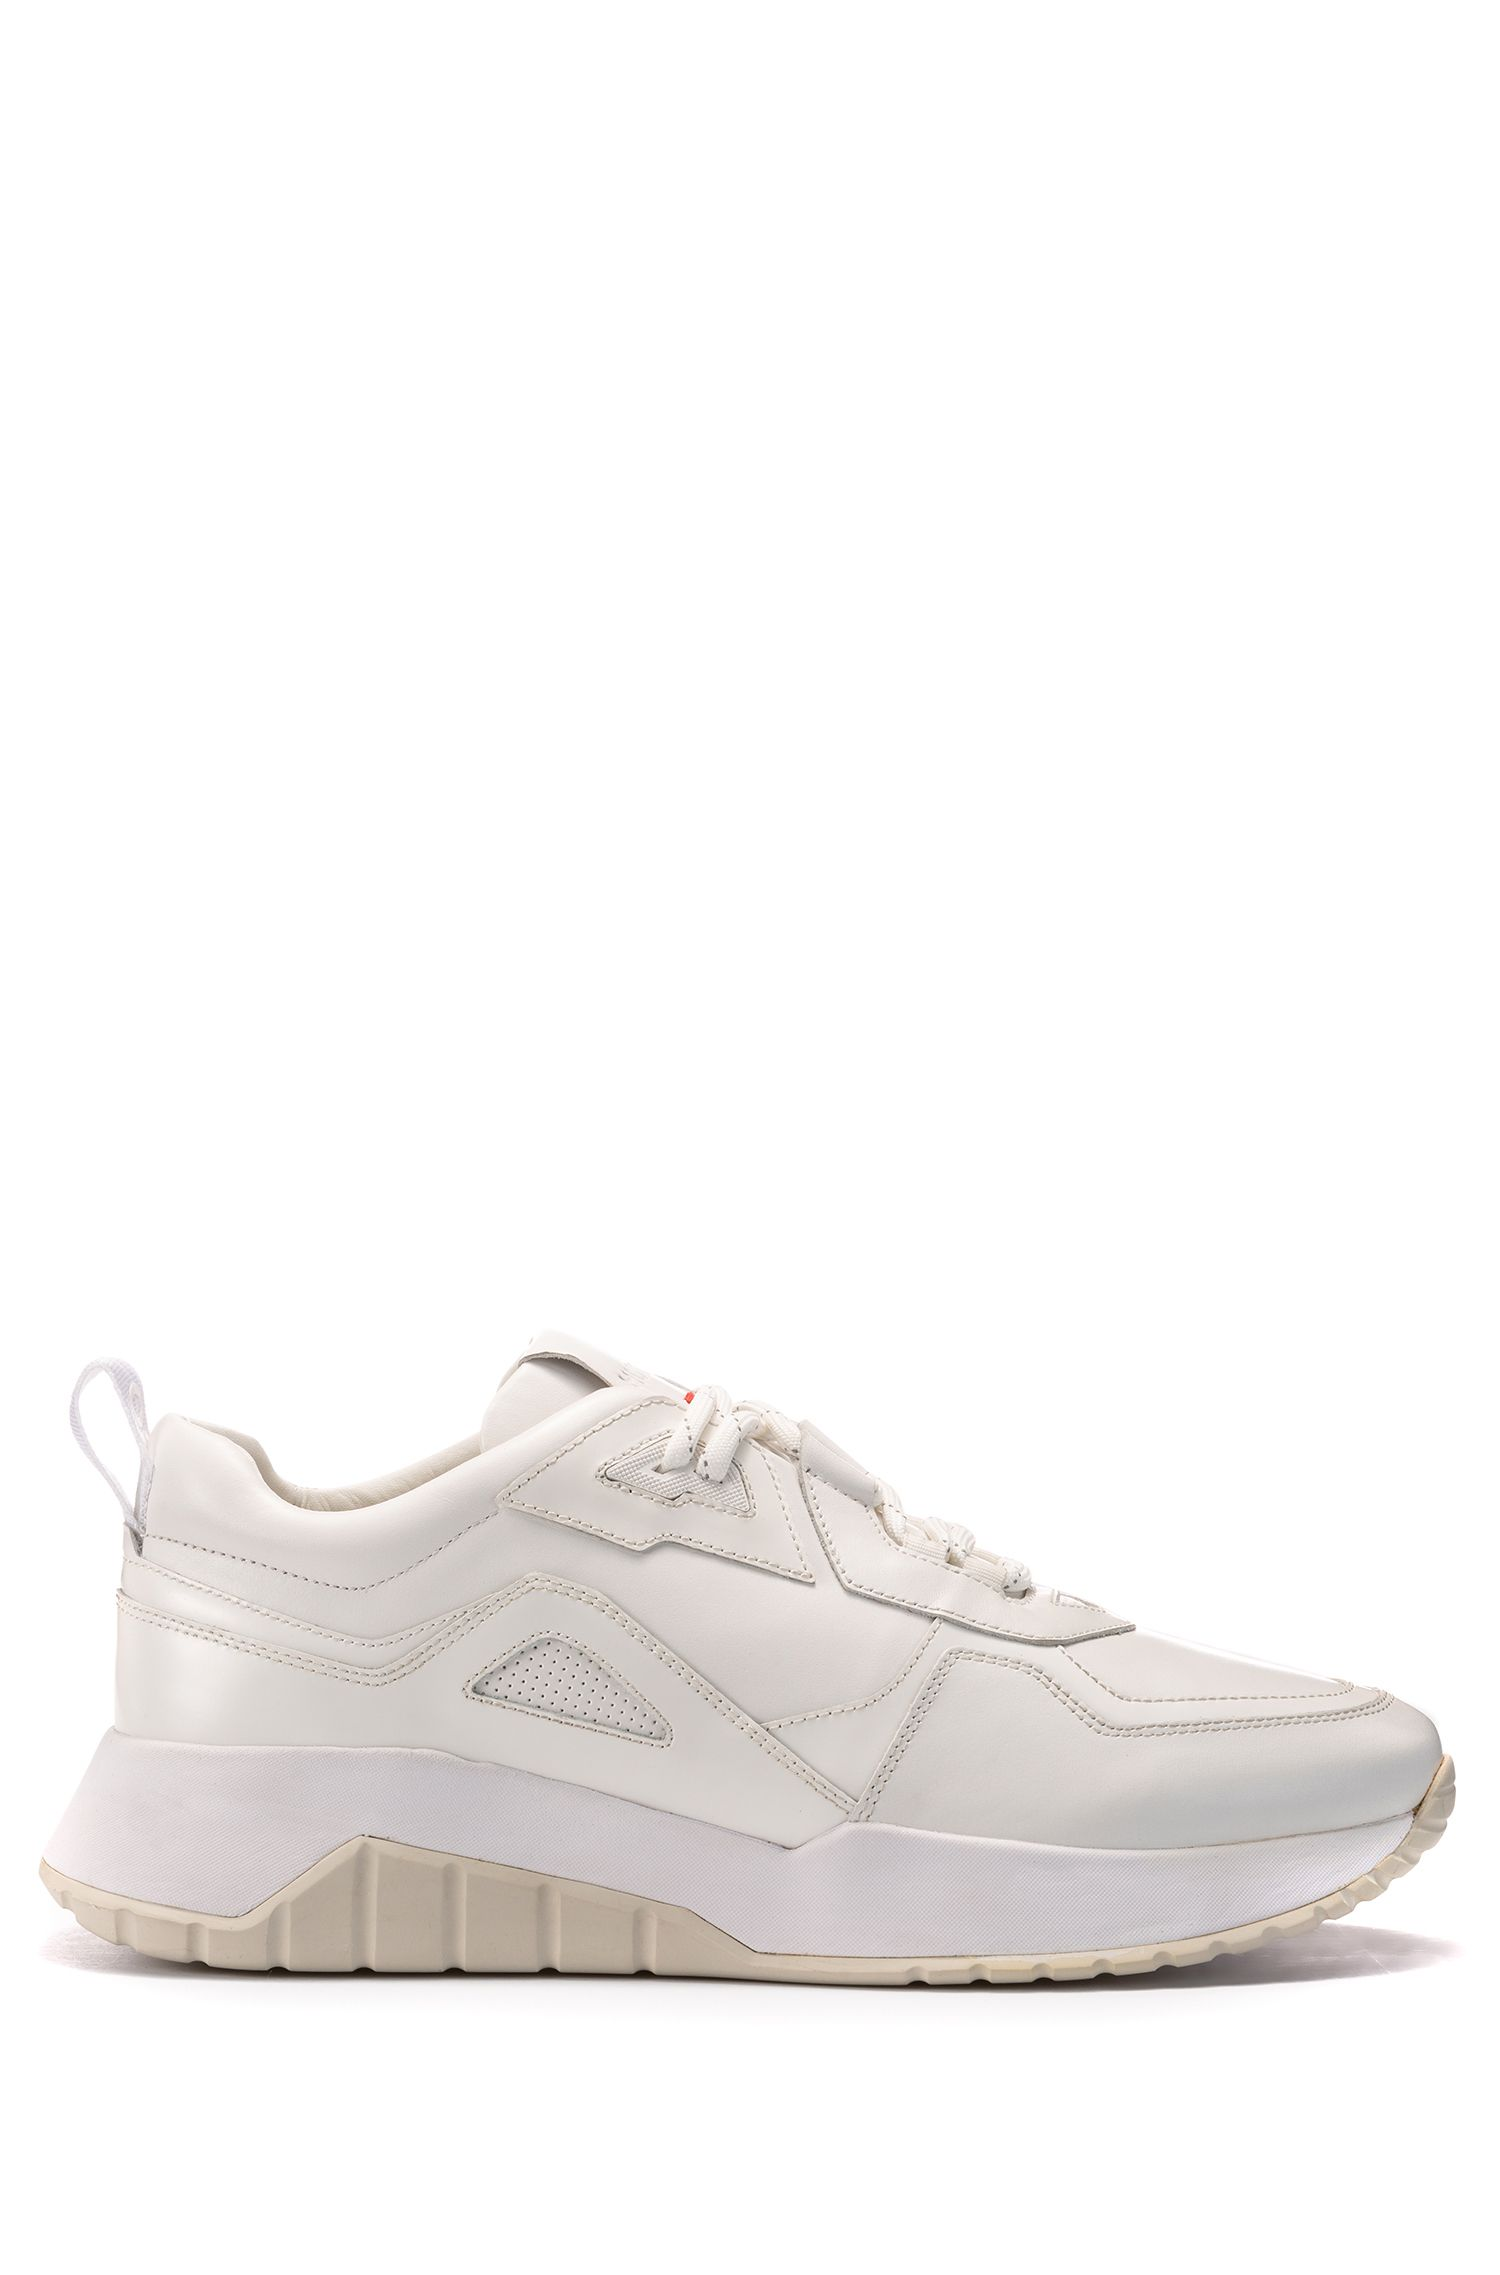 Lace-up sneakers in leather with perforated details, White